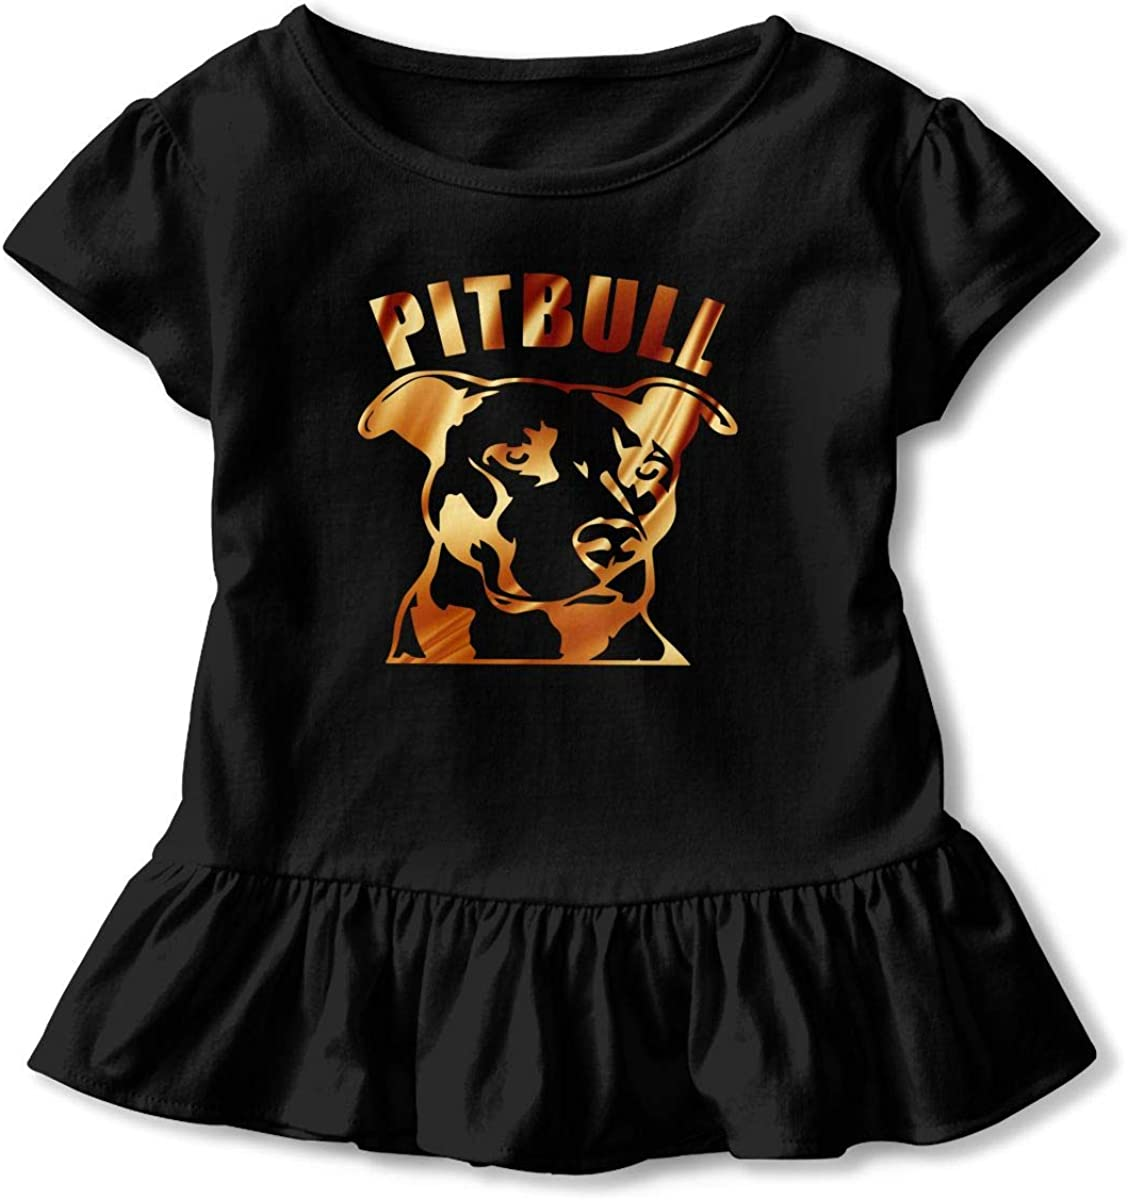 Cheng Jian Bo Pit Bull Crumble Toddler Girls T Shirt Kids Cotton Short Sleeve Ruffle Tee